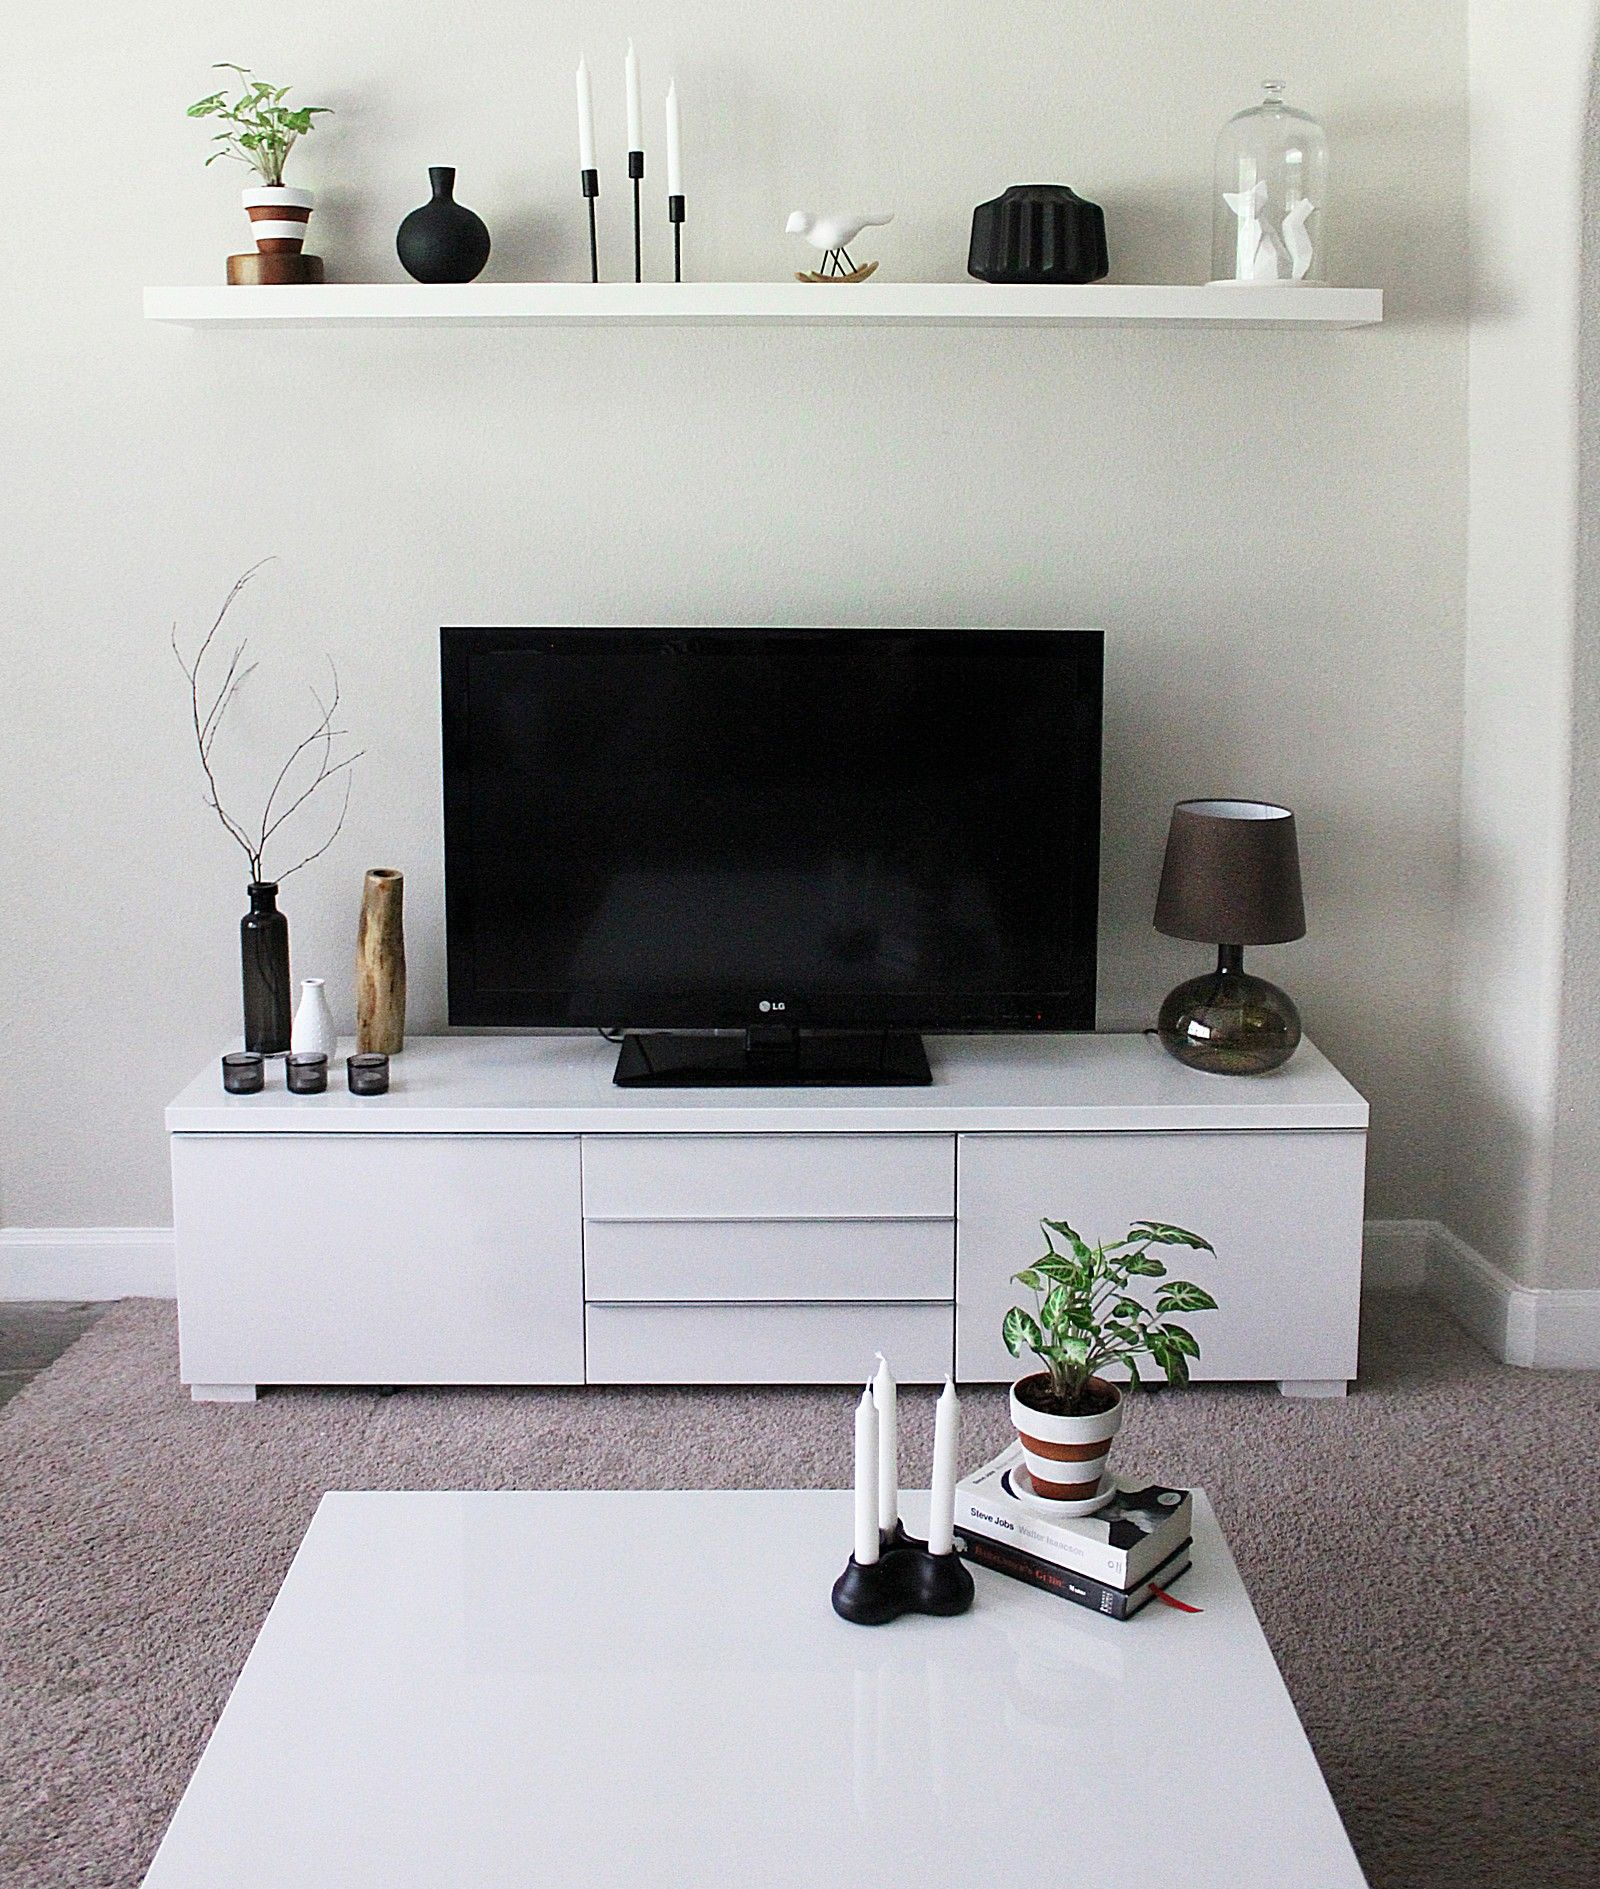 Minimalist tv stand and cabinet ikea besta interiors design ideas pinterest tv stands - Living room tv ideas ...